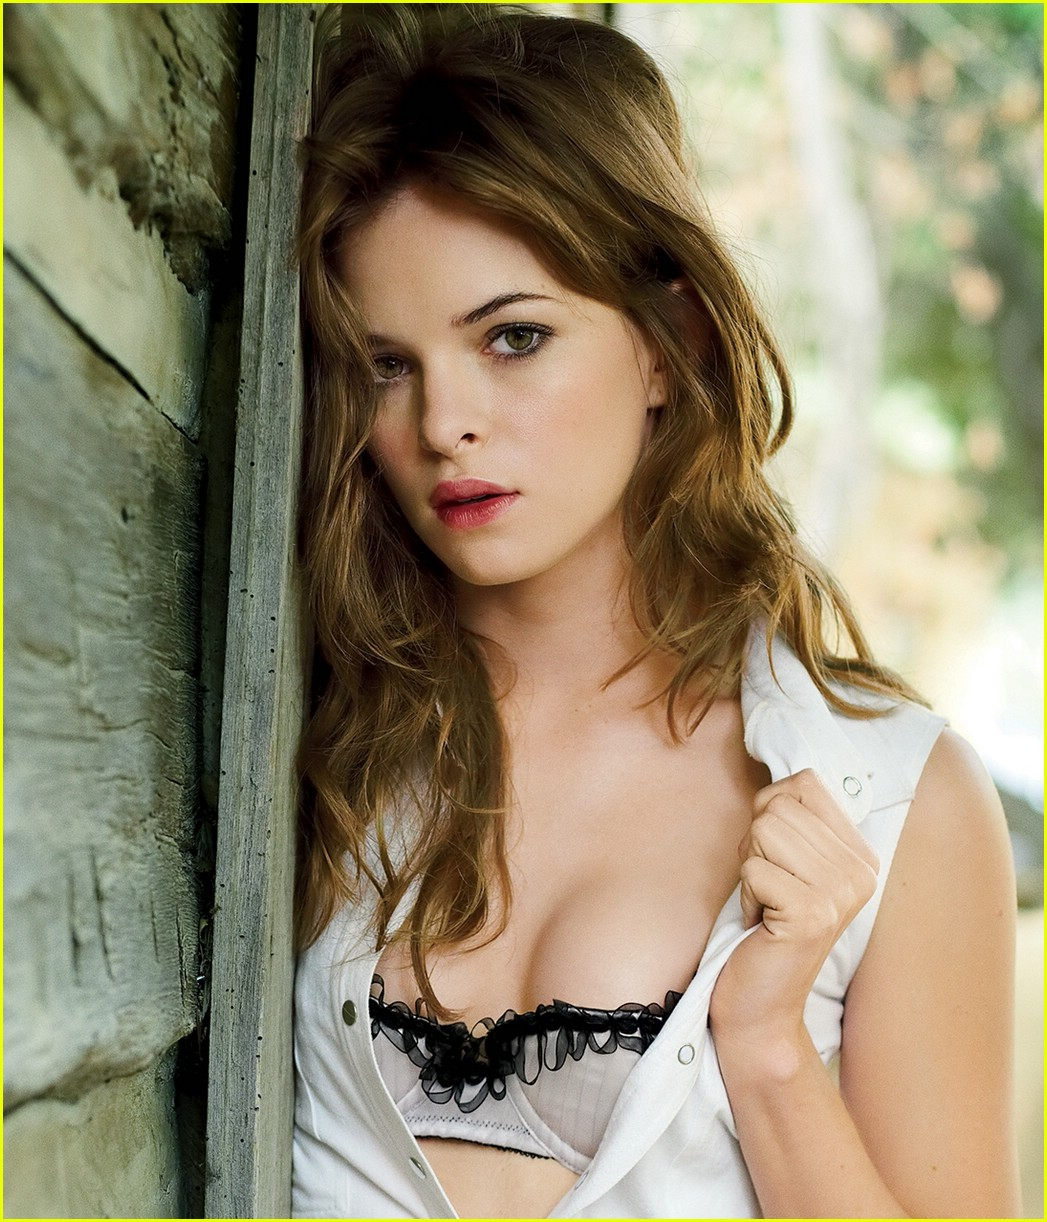 That necessary. Danielle panabaker has big sexy boobs